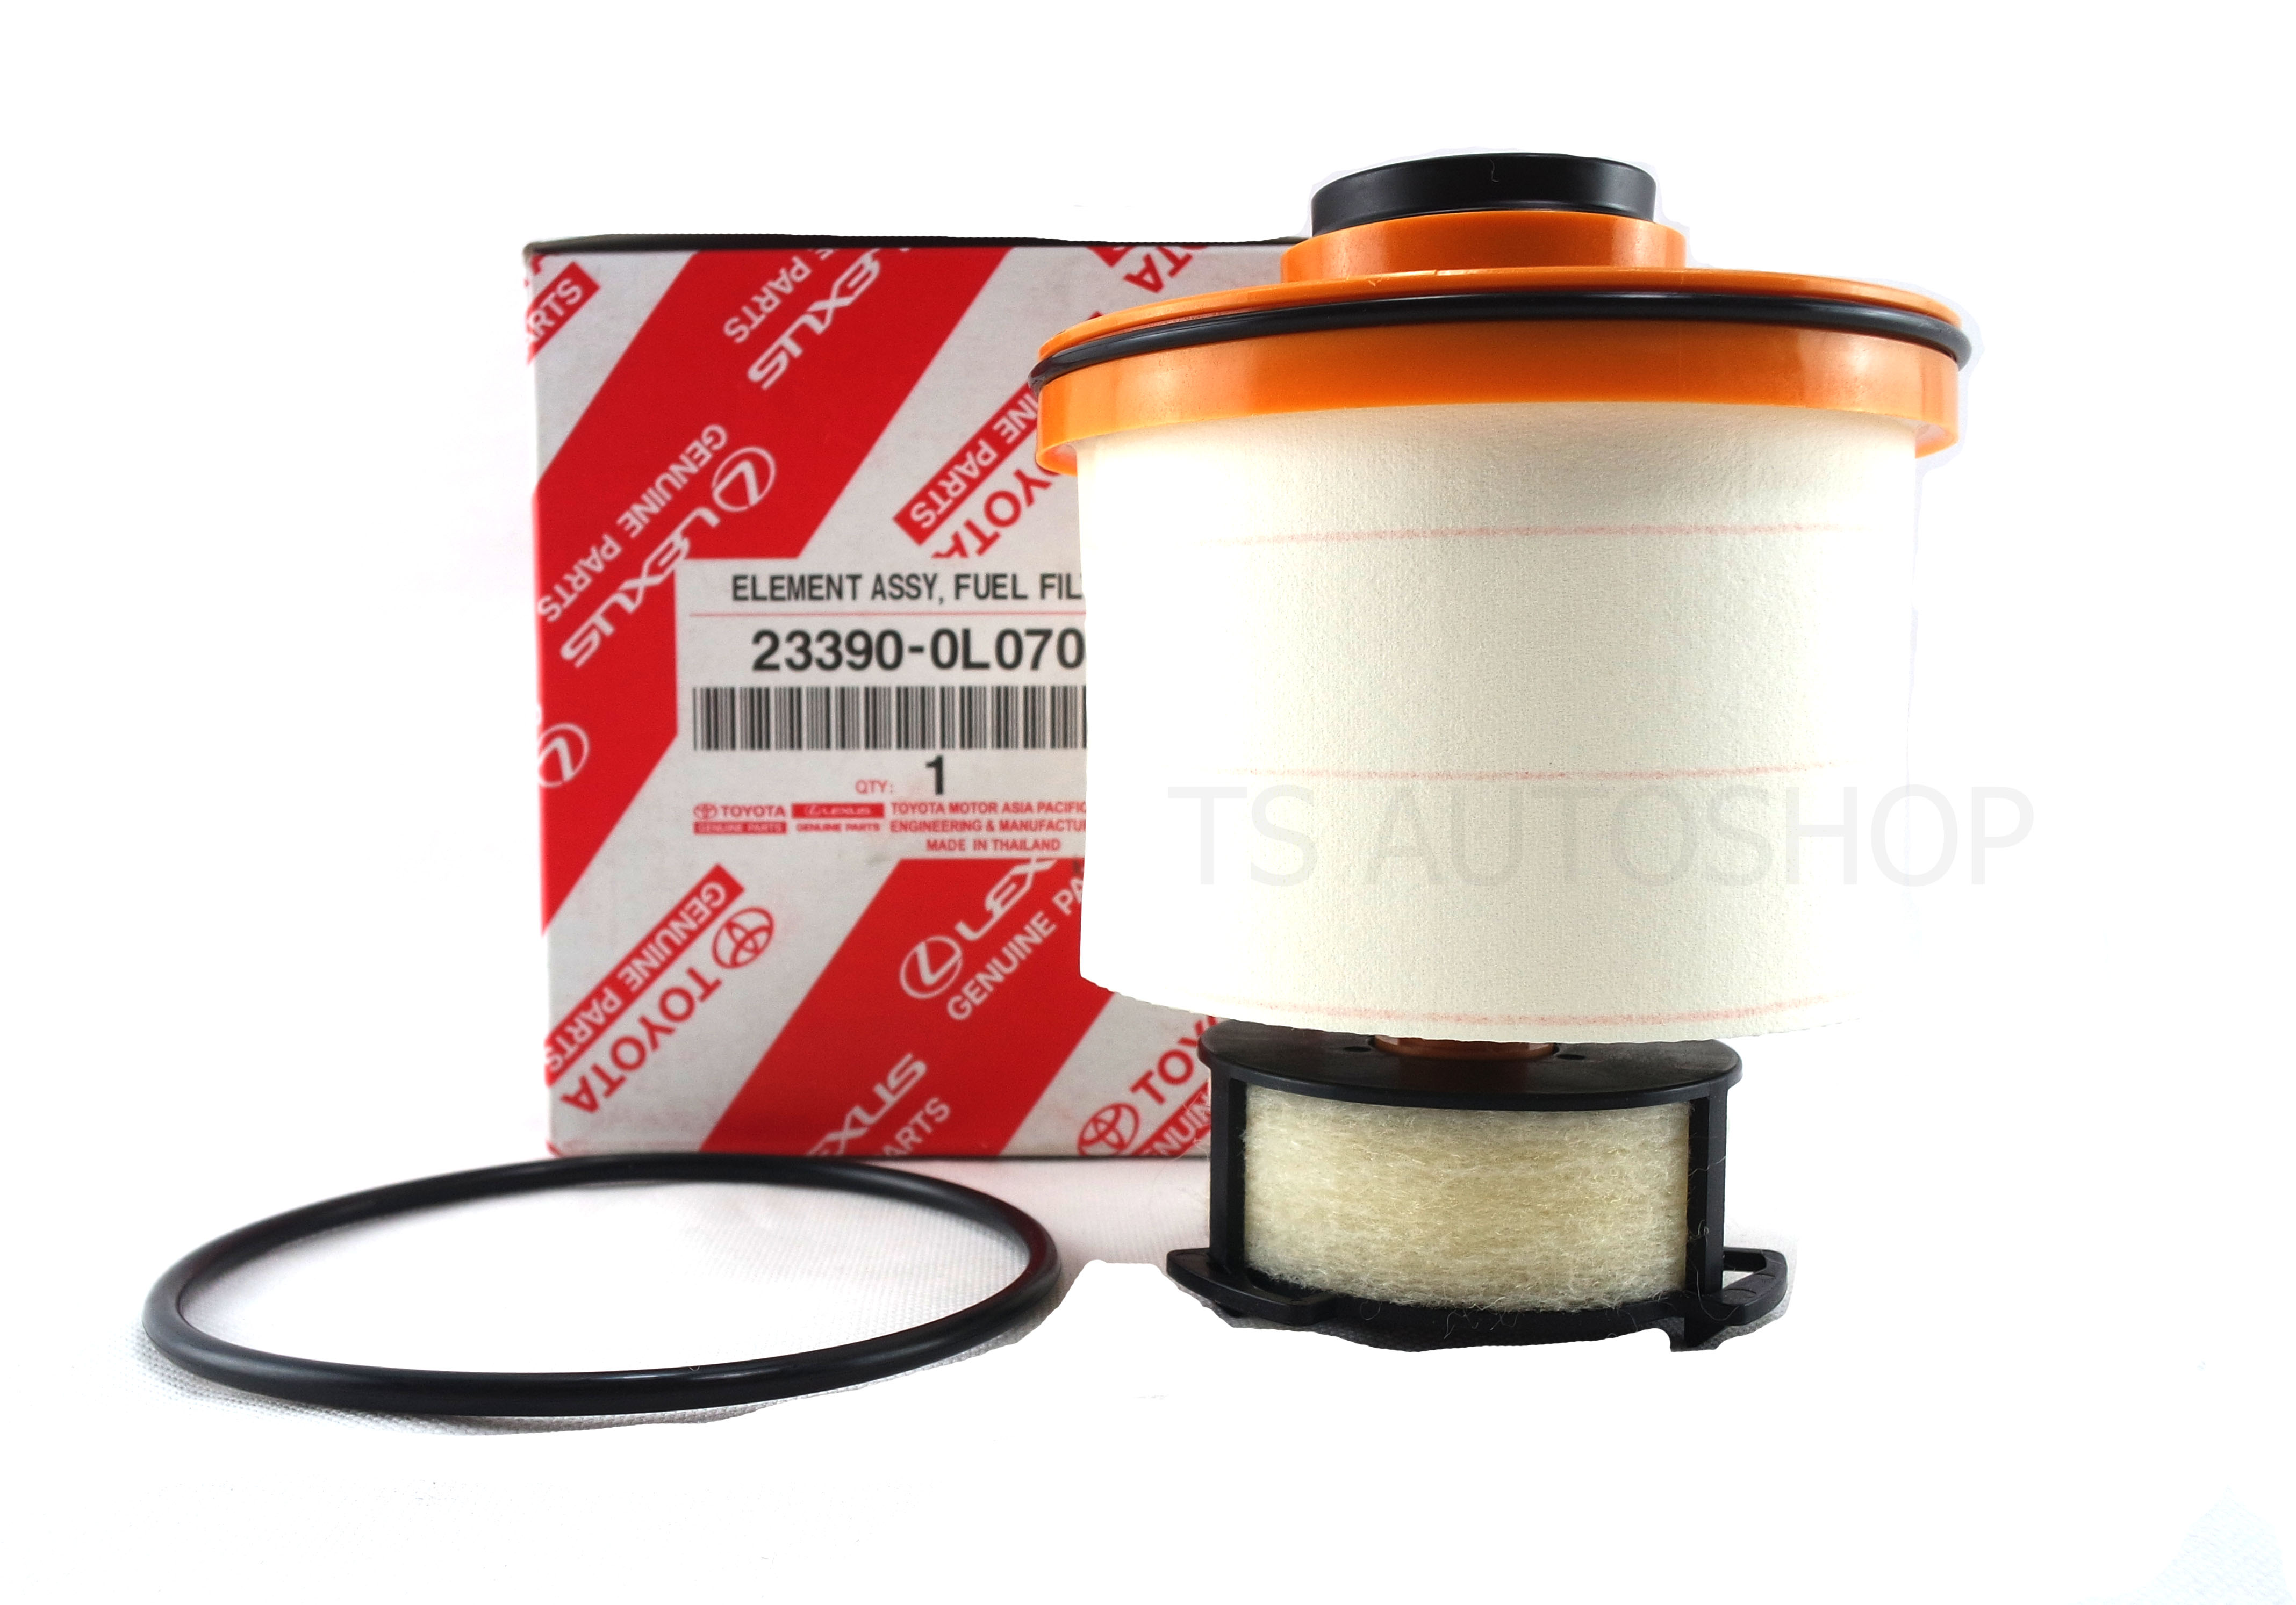 ELEMENT FUEL FILTER GENUINE PARTS FOR TOYOTA HILUX REVO 4DR SR5 M70 M80  2015-ON